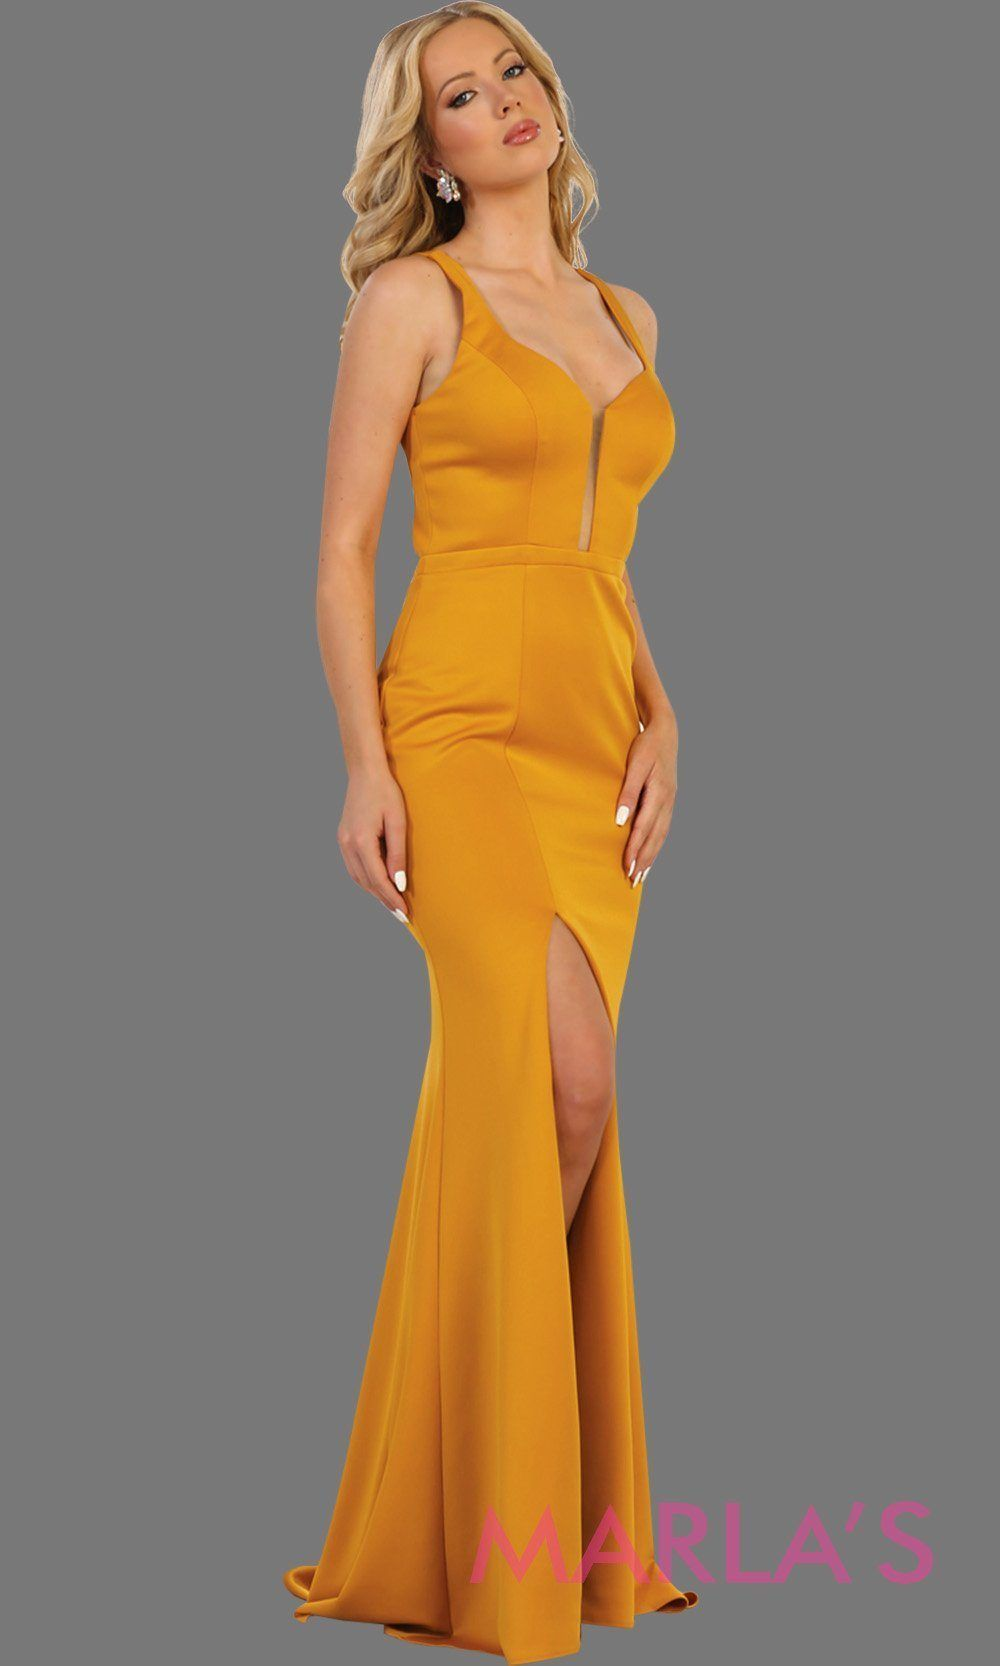 ac255fa90bb2 Long mustard yellow open back dress with high slit. This sleek and sexy  dress is